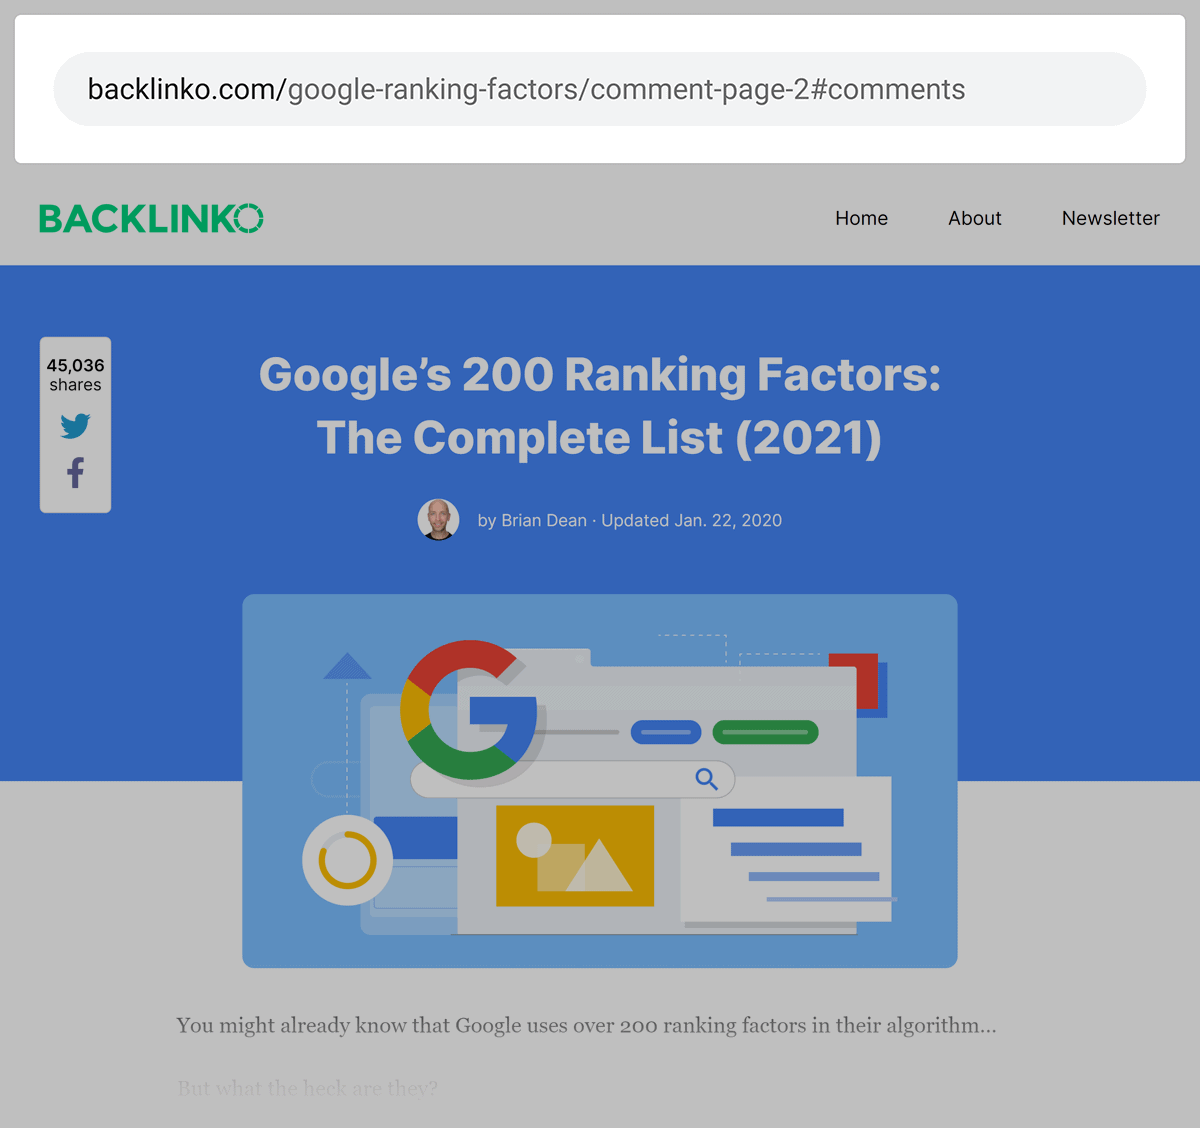 Backlinko – Comments pages have original post on them